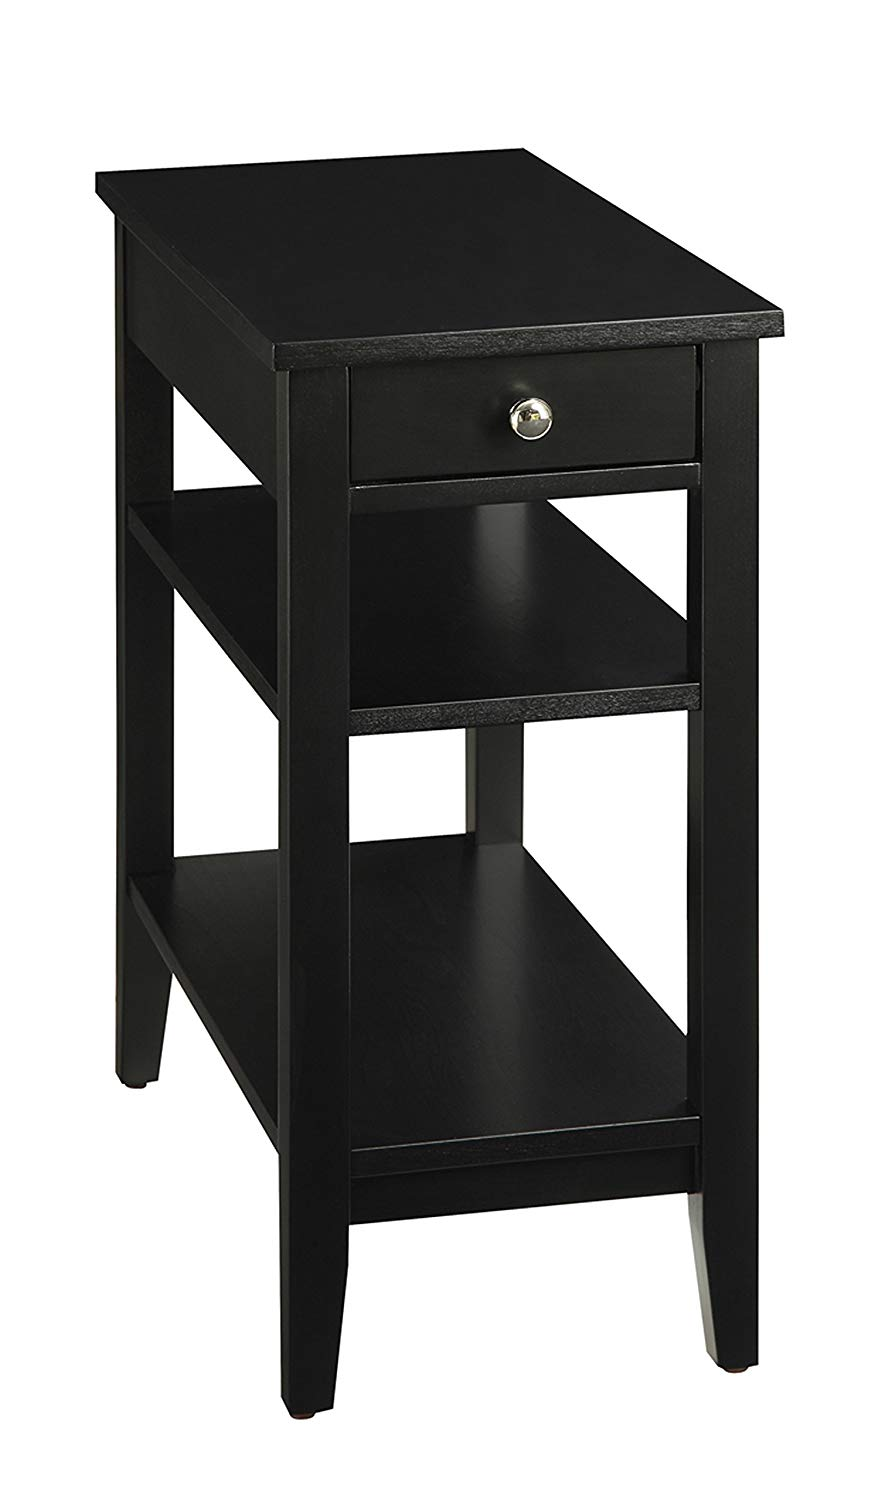 convenience concepts american heritage tier end table storage accent black room essentials with drawer kitchen dining pottery barn mahogany coffee breakfast stools pine tables